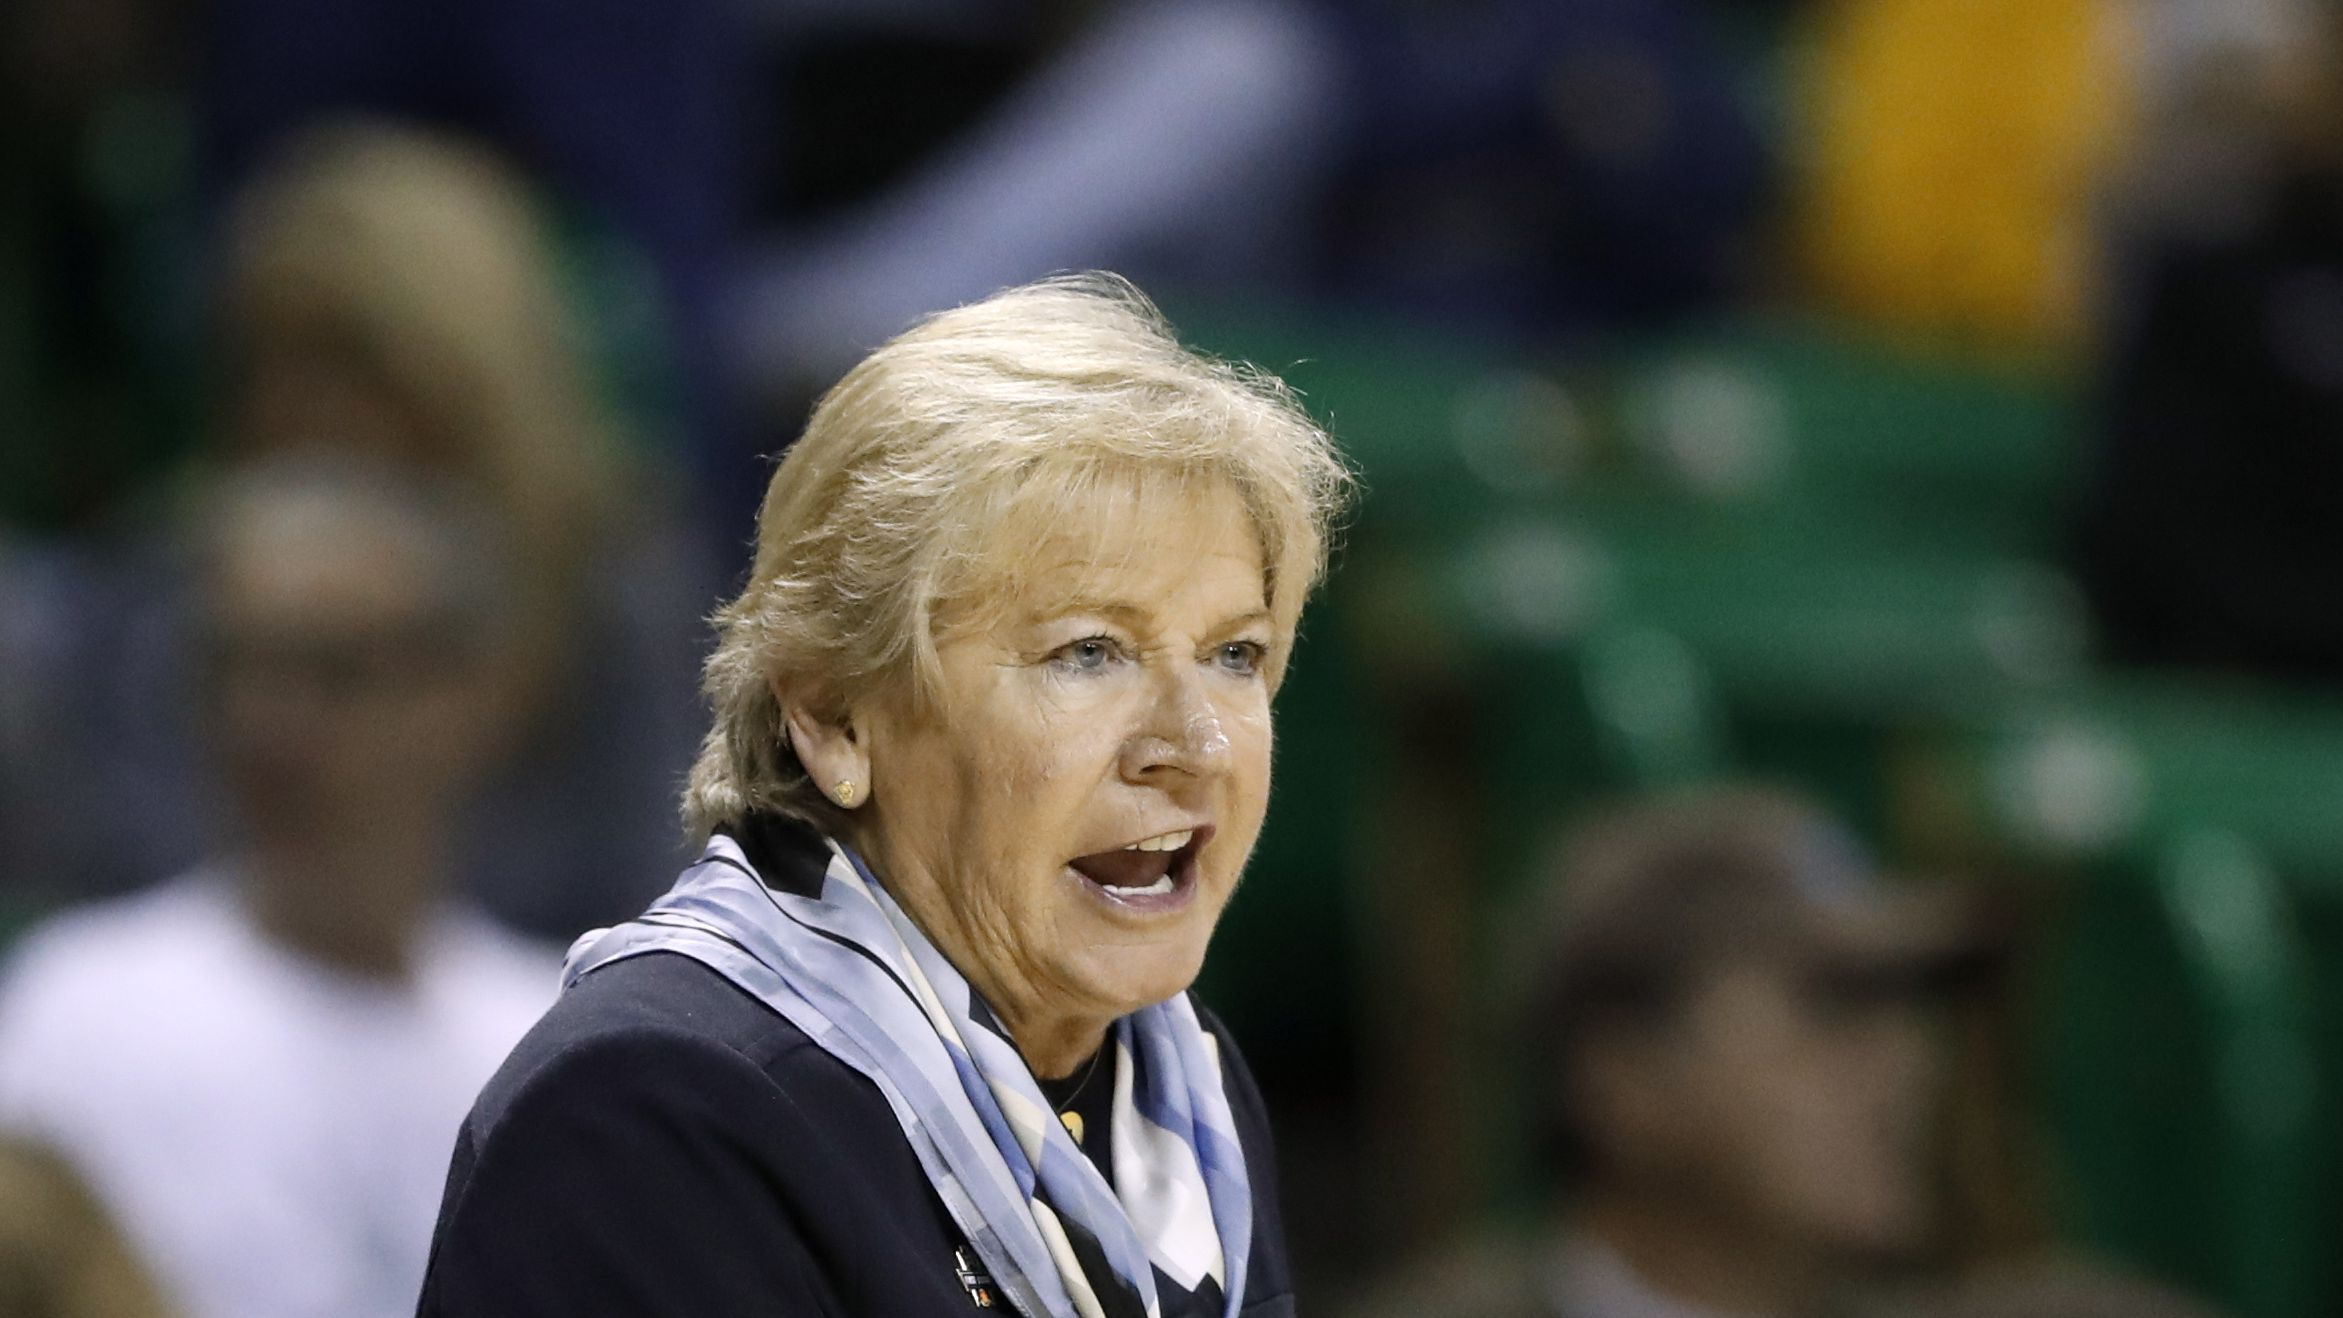 UNC's Hatchell resigns after findings from program review